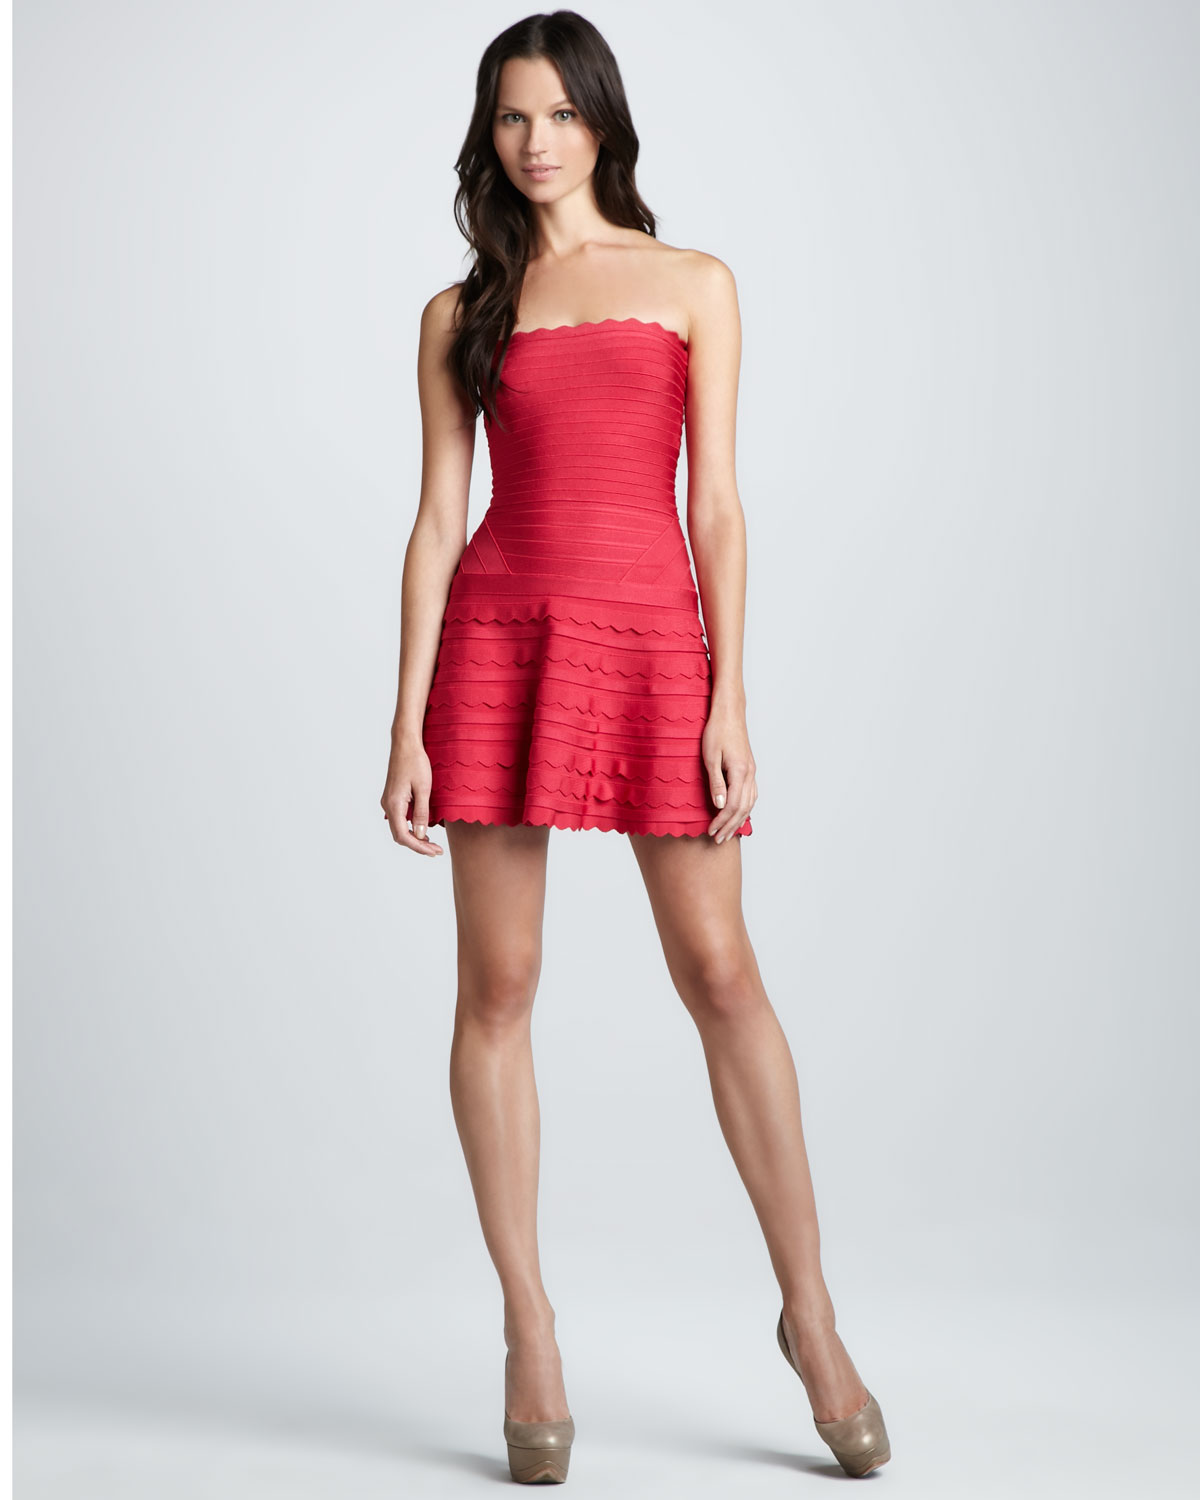 lyst herv l ger strapless bandage minidress with scalloped accents in red. Black Bedroom Furniture Sets. Home Design Ideas